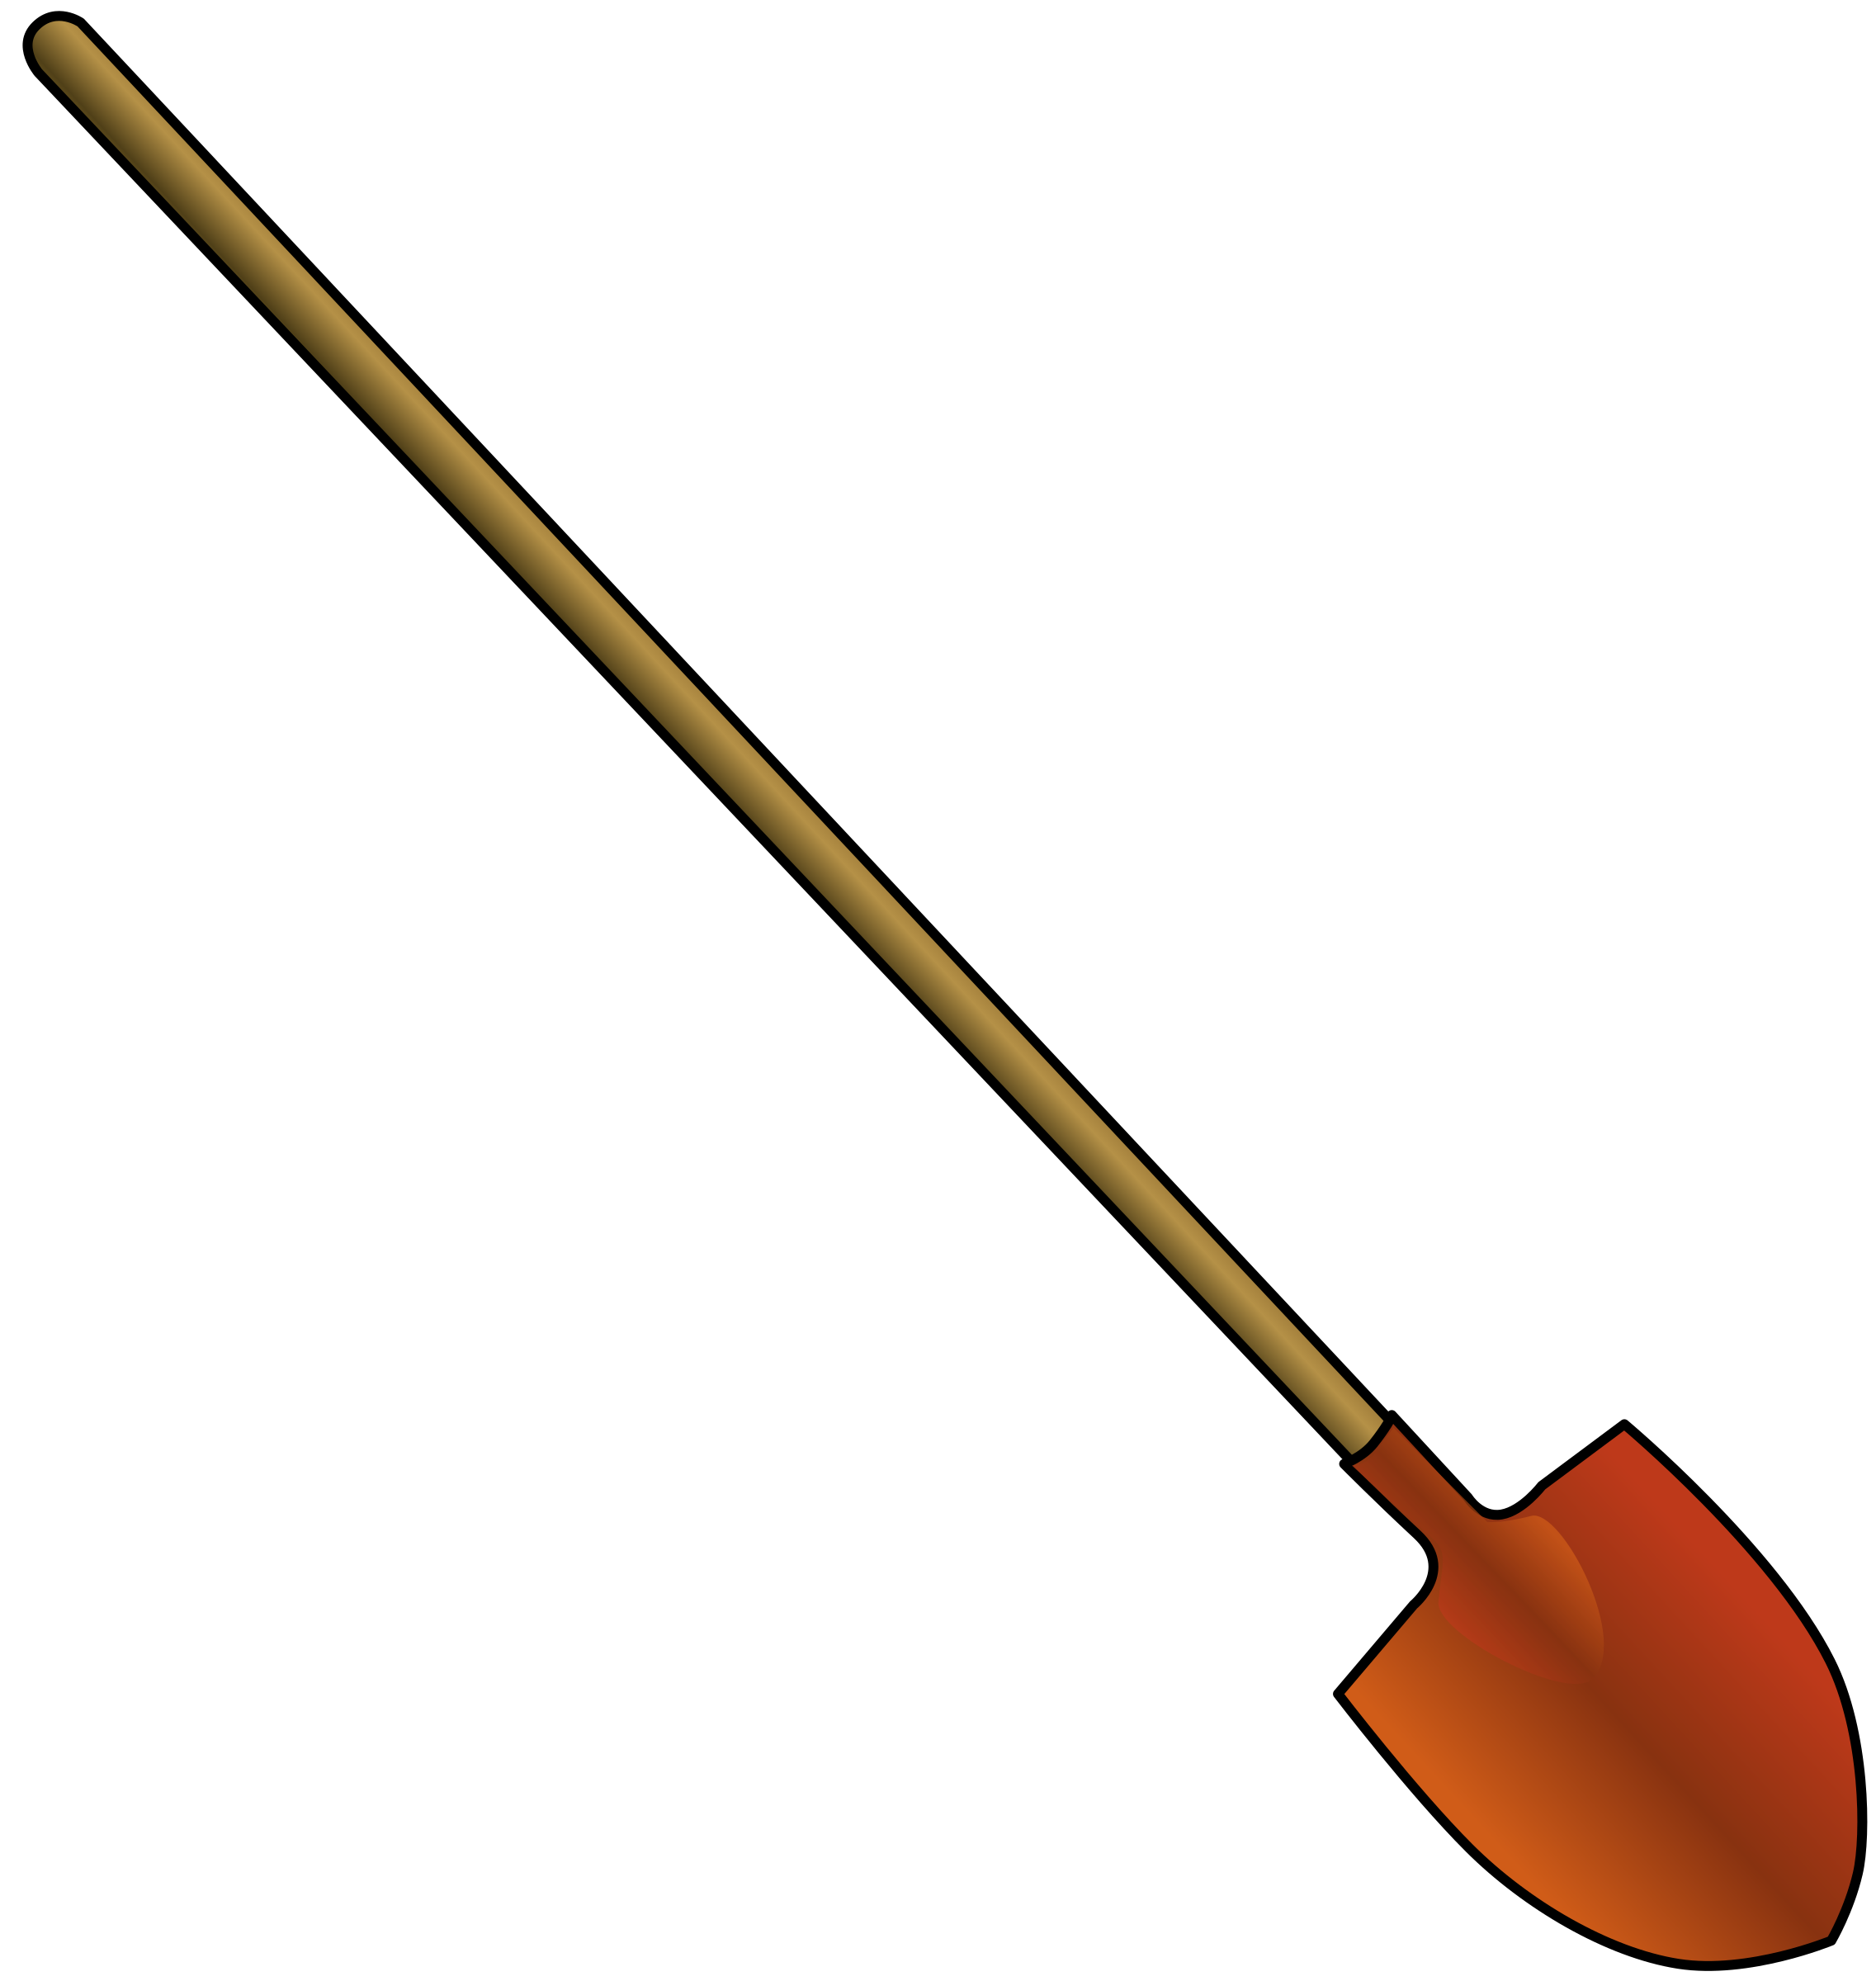 Soup clipart ladel. Round point shovel big